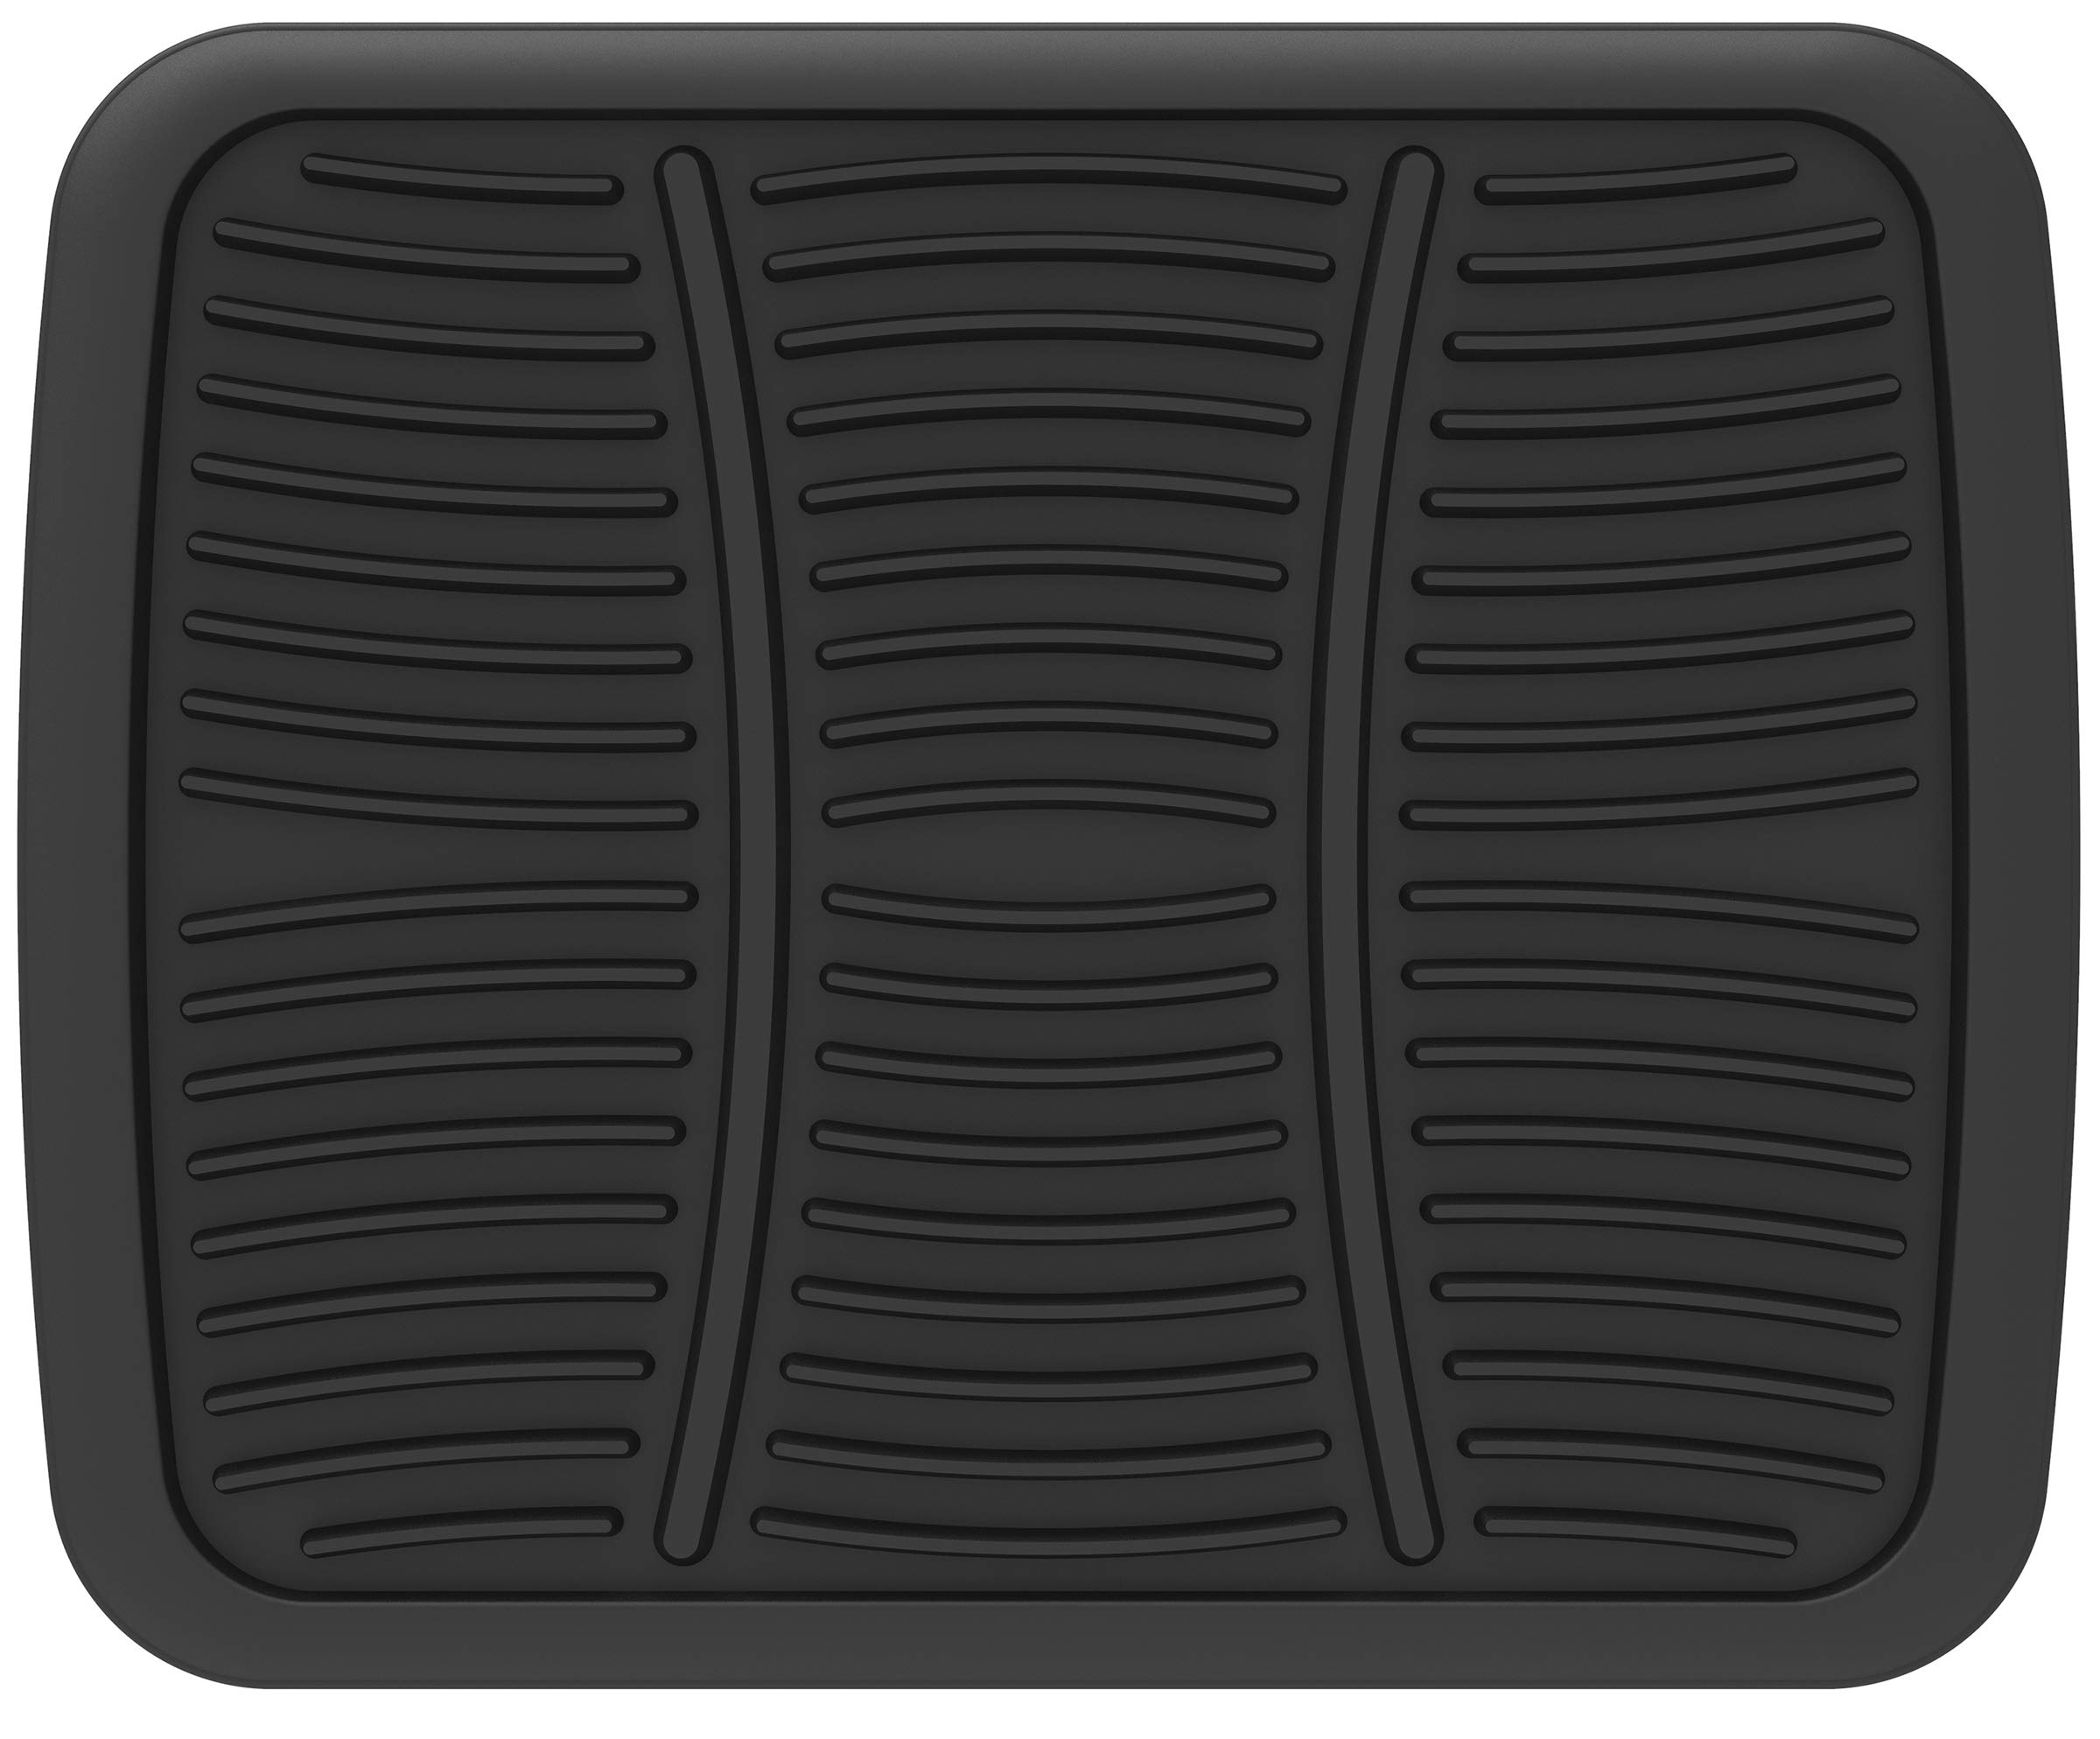 Carsio Black Rubber Tailored Car Floor Mats To fit VW Sharan 2010 Onwards 3mm 4pc Set